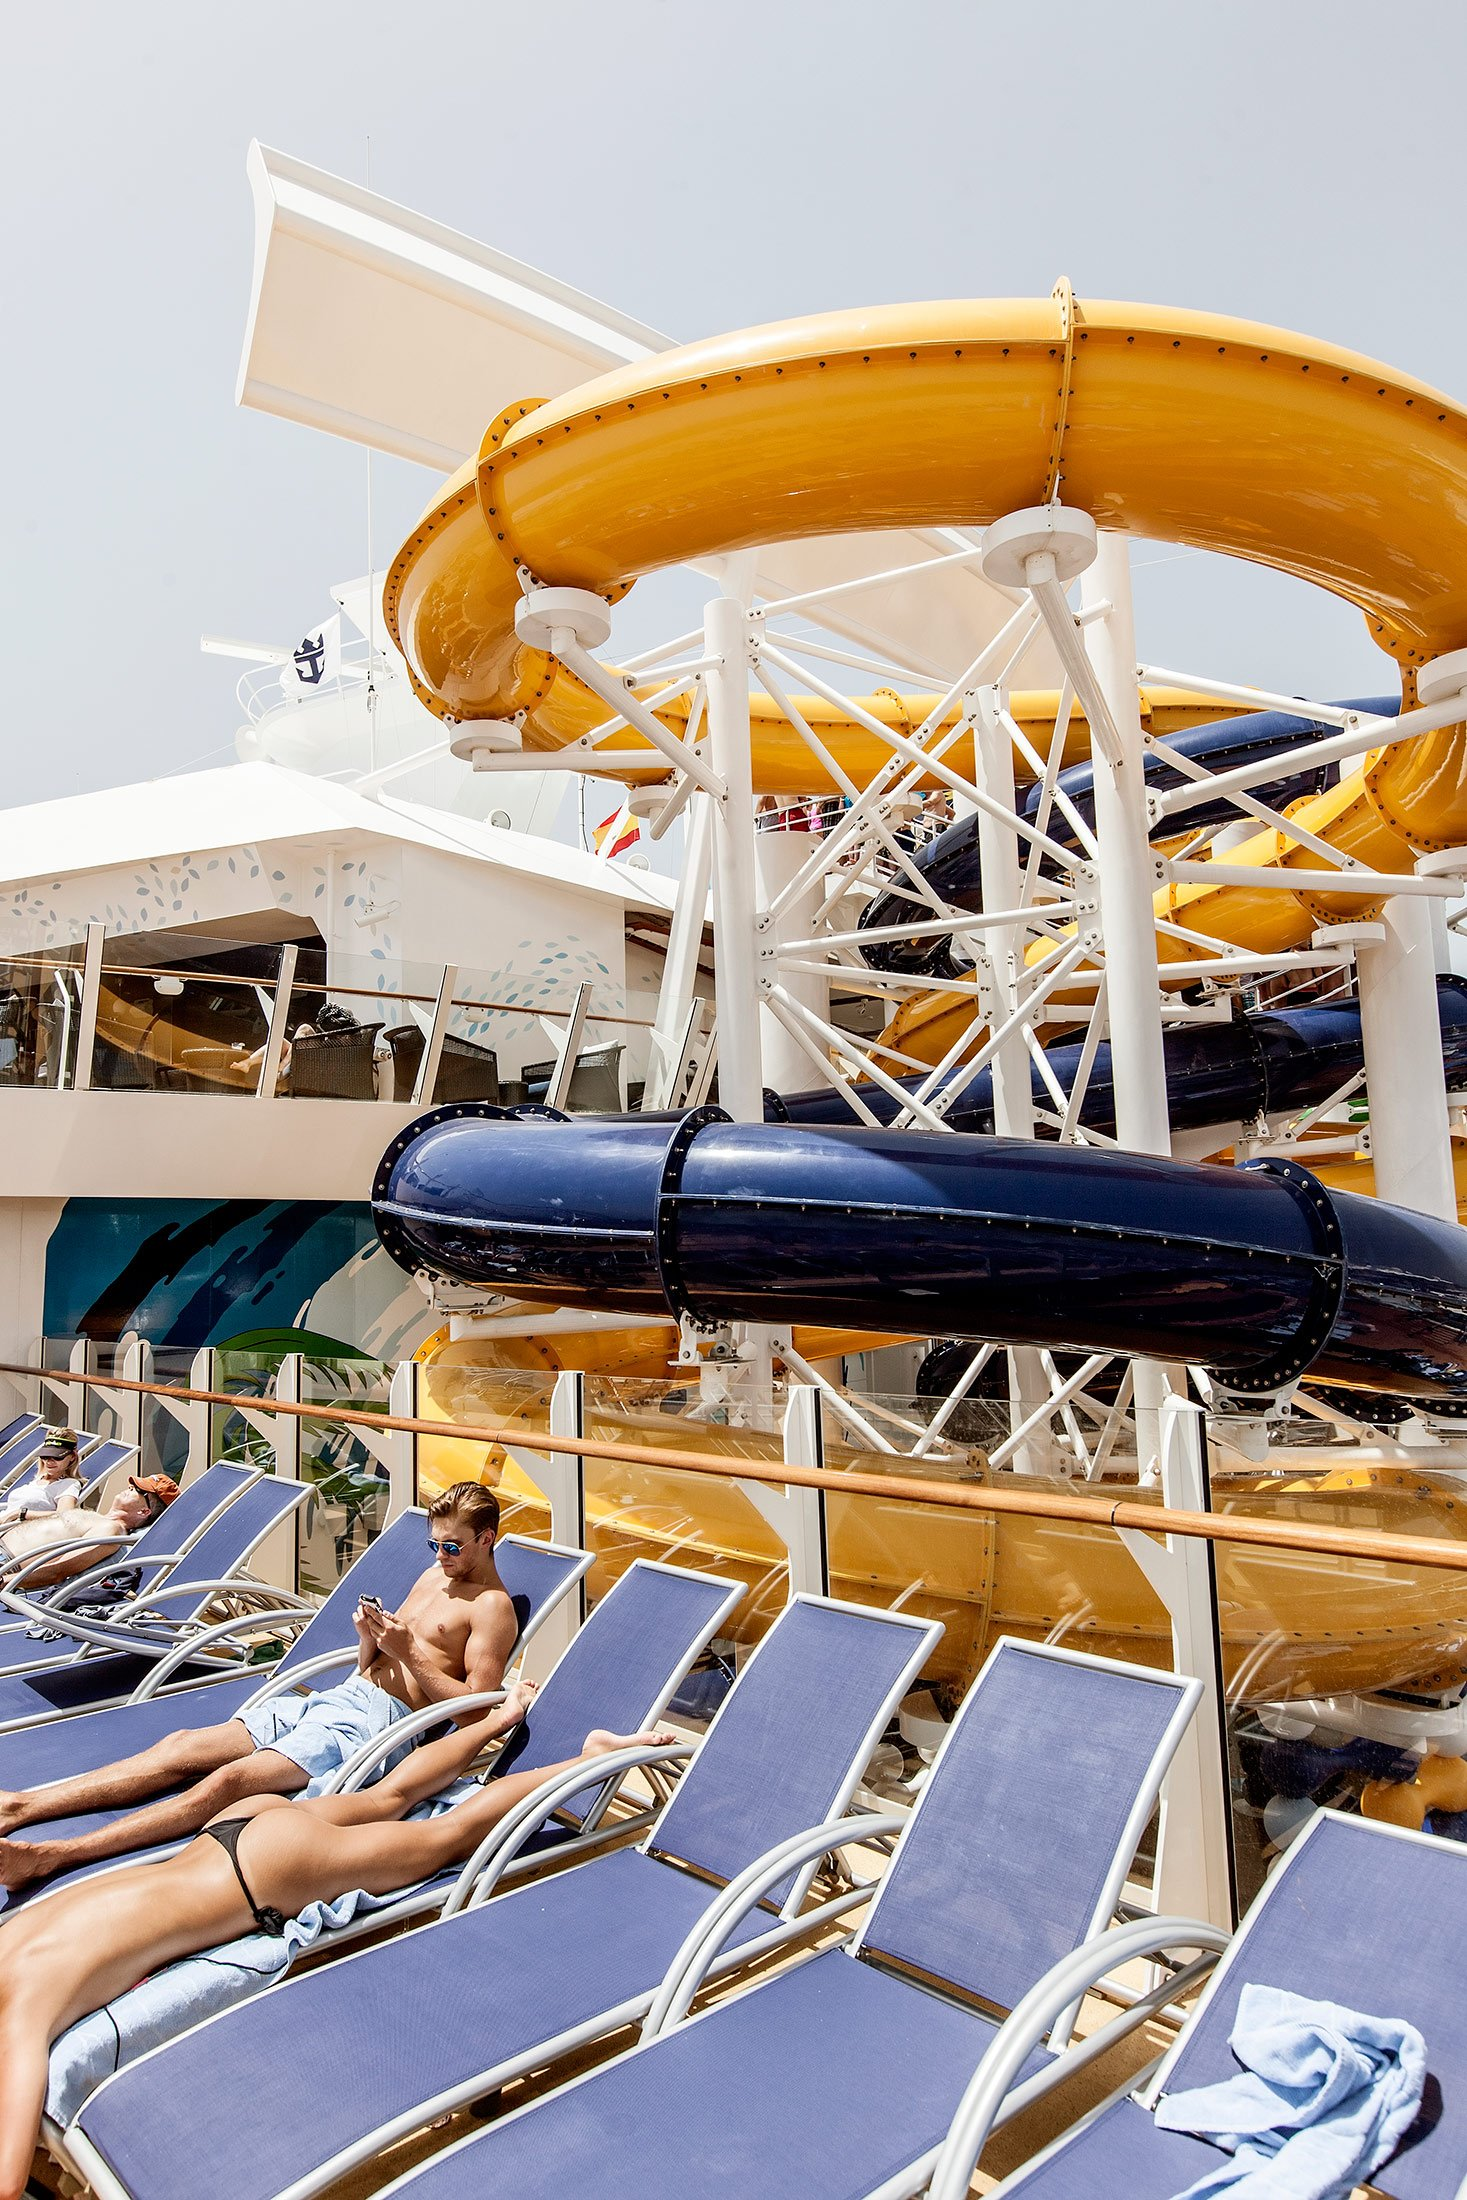 Royal Caribbean, Harmony of the Seas, Stretching the length of the ship, the Pool and Sports Zone is an ample playground for guests of all ages, featuring four unique types of pools, two FlowRider surf simulators, a zip line, amazing views of Boardwalk and Central Park below, plus the introduction of a trio of water slides as well as the Ultimate Abyss. plus bars and afternoon lice concerts The Perfect Storm– spiraling five decks above the landscaped, open-air Central Park in the center of the ship, waterslides Cyclone, Typhoon and Supercell come together as The Perfect Storm. Guests can challenge each other and race to the finish line with Cyclone and Typhoon, which twist and turn down three decks, while sliders in Supercell will be swirled around its unique champagne bowl before descending into a big splash finale.